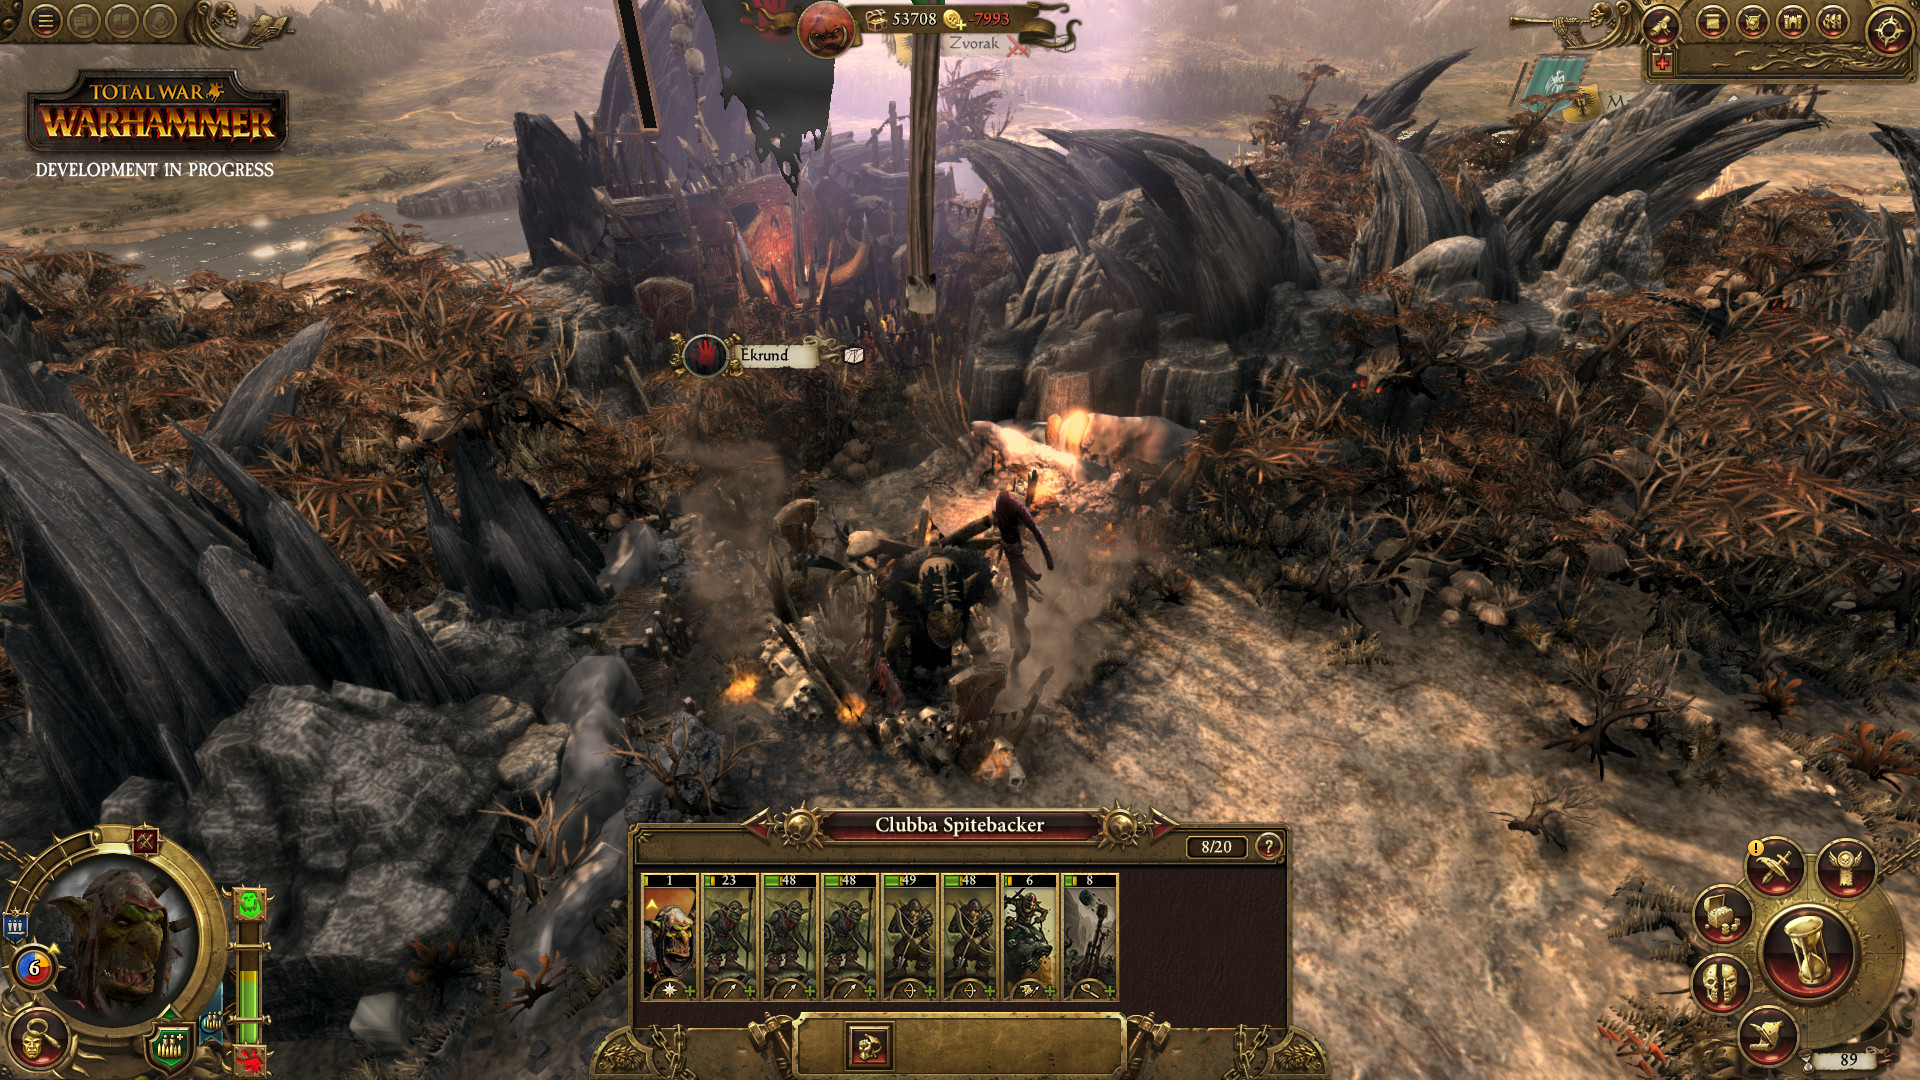 Total War: Warhammer Screenshot 1